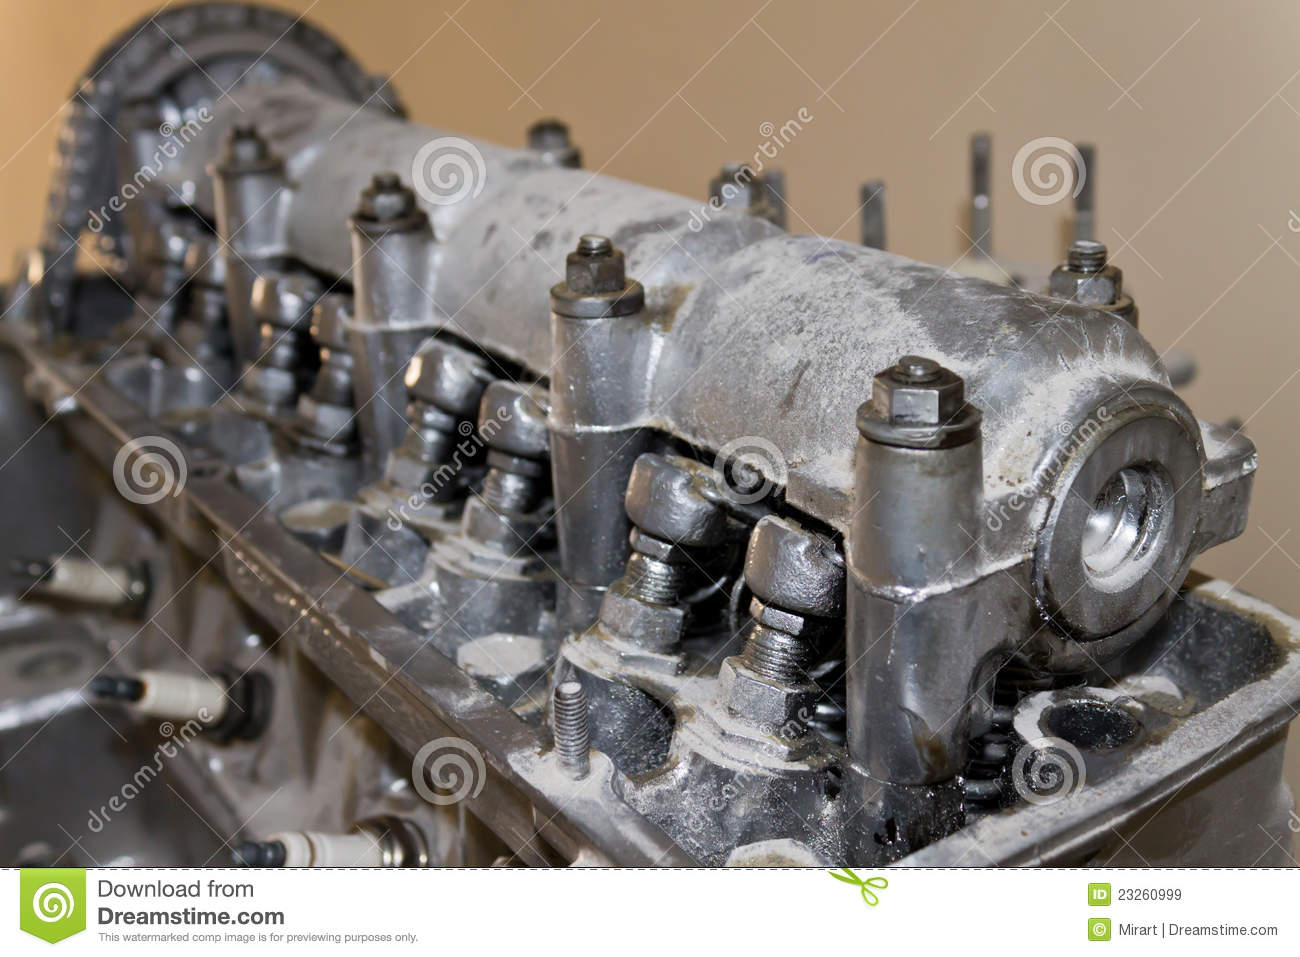 Old car engine stock image. Image of energy, concept - 23260999